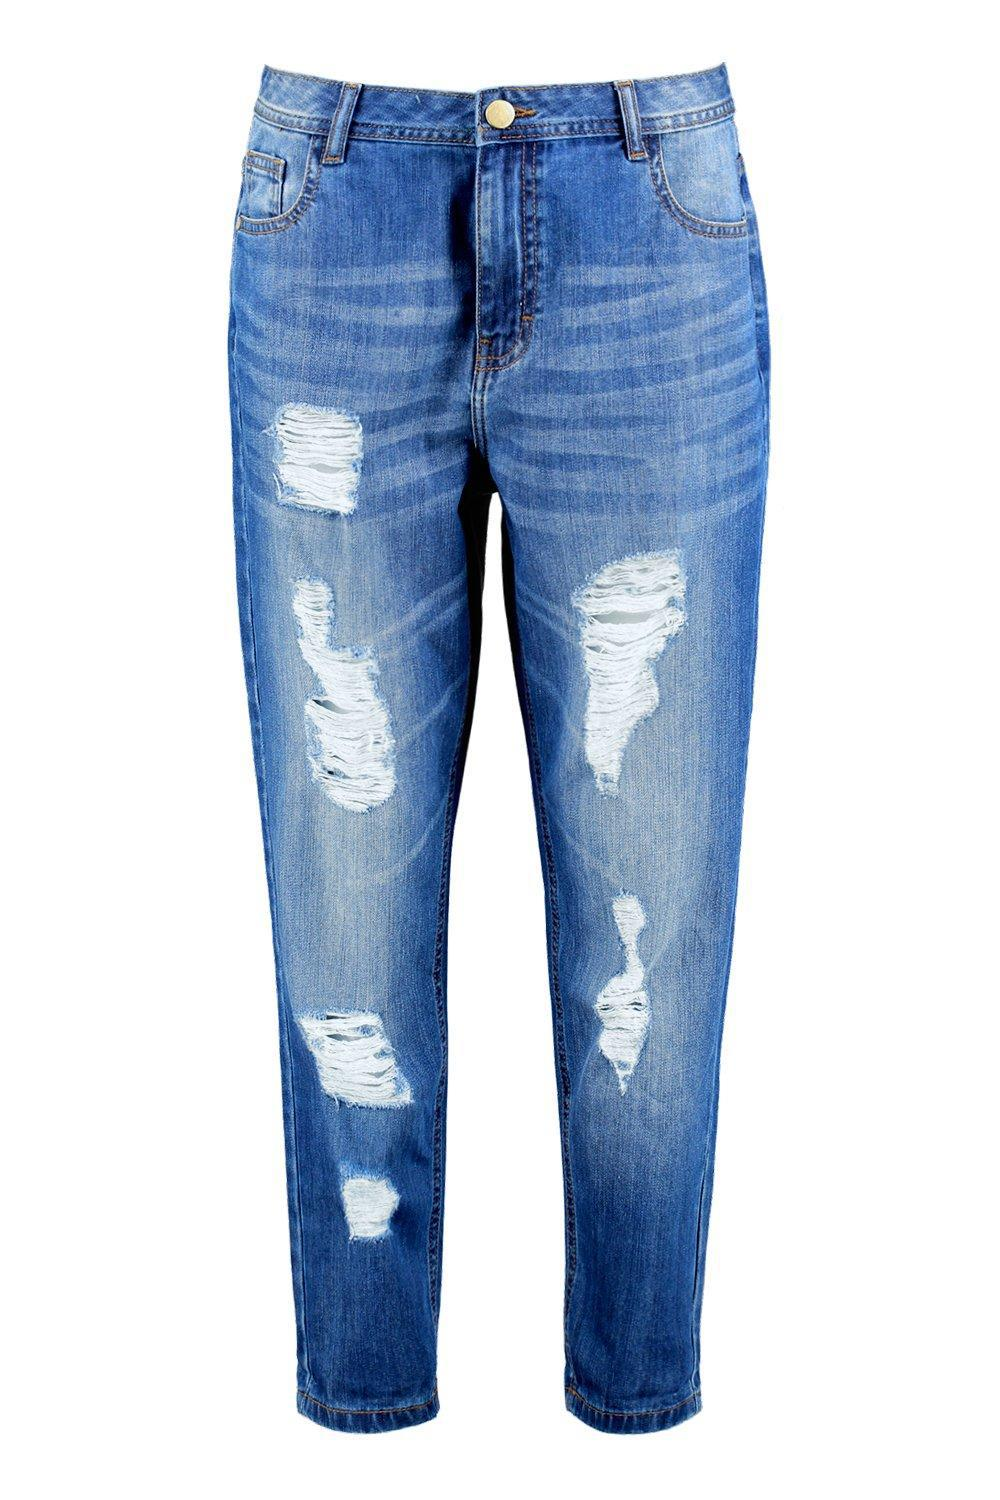 6b25907e857b Gallery. Previously sold at: Boohoo · Women's Low Rise Jeans Women's Mom ...